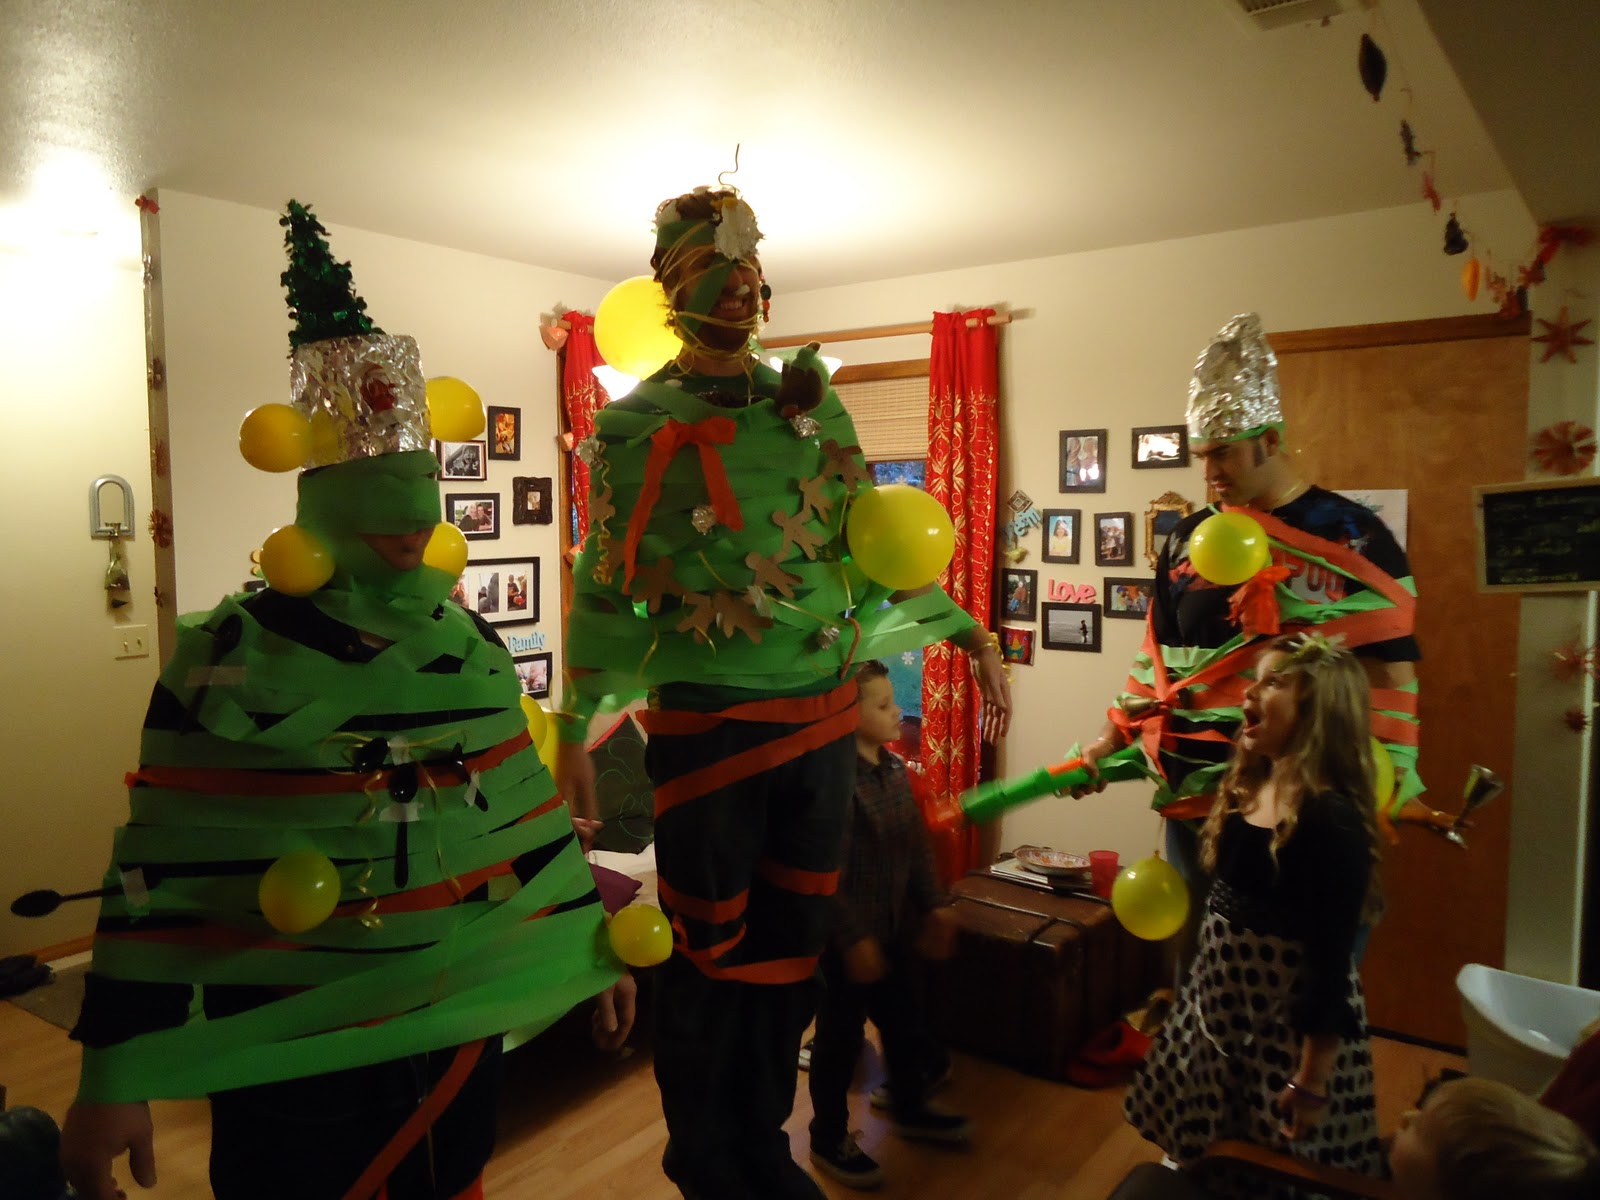 Christmas tree dress up images - Christmas Tree Game Rules Find A Man And Dress Him Up As A Christmas Tree Using Crepe Paper Balloons And Any Other Objects That You Can Sneak In